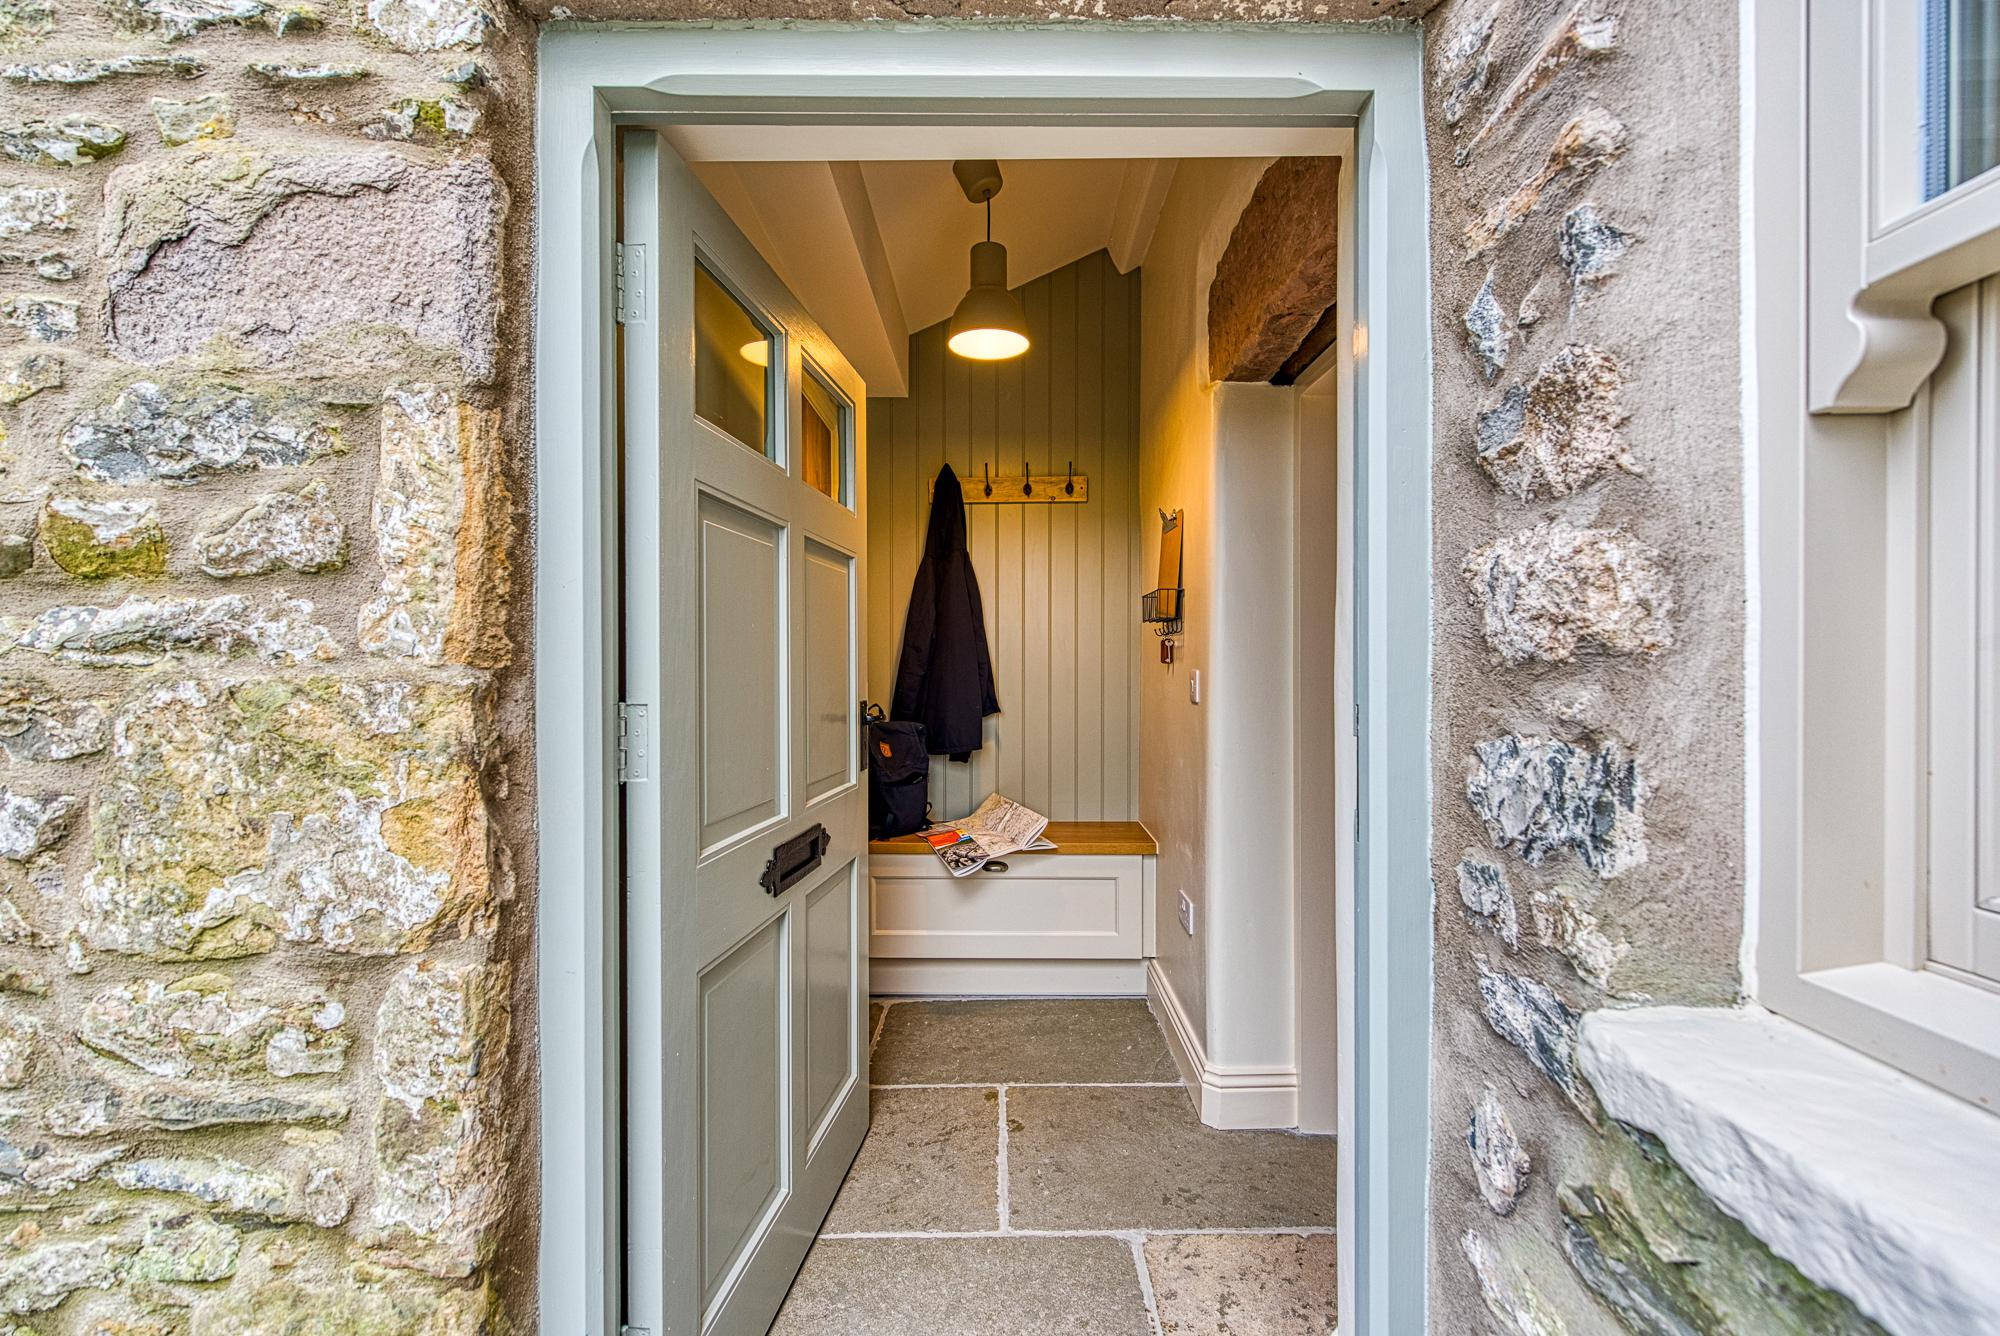 Self-Catering in Cumbria holidays at Cool Places